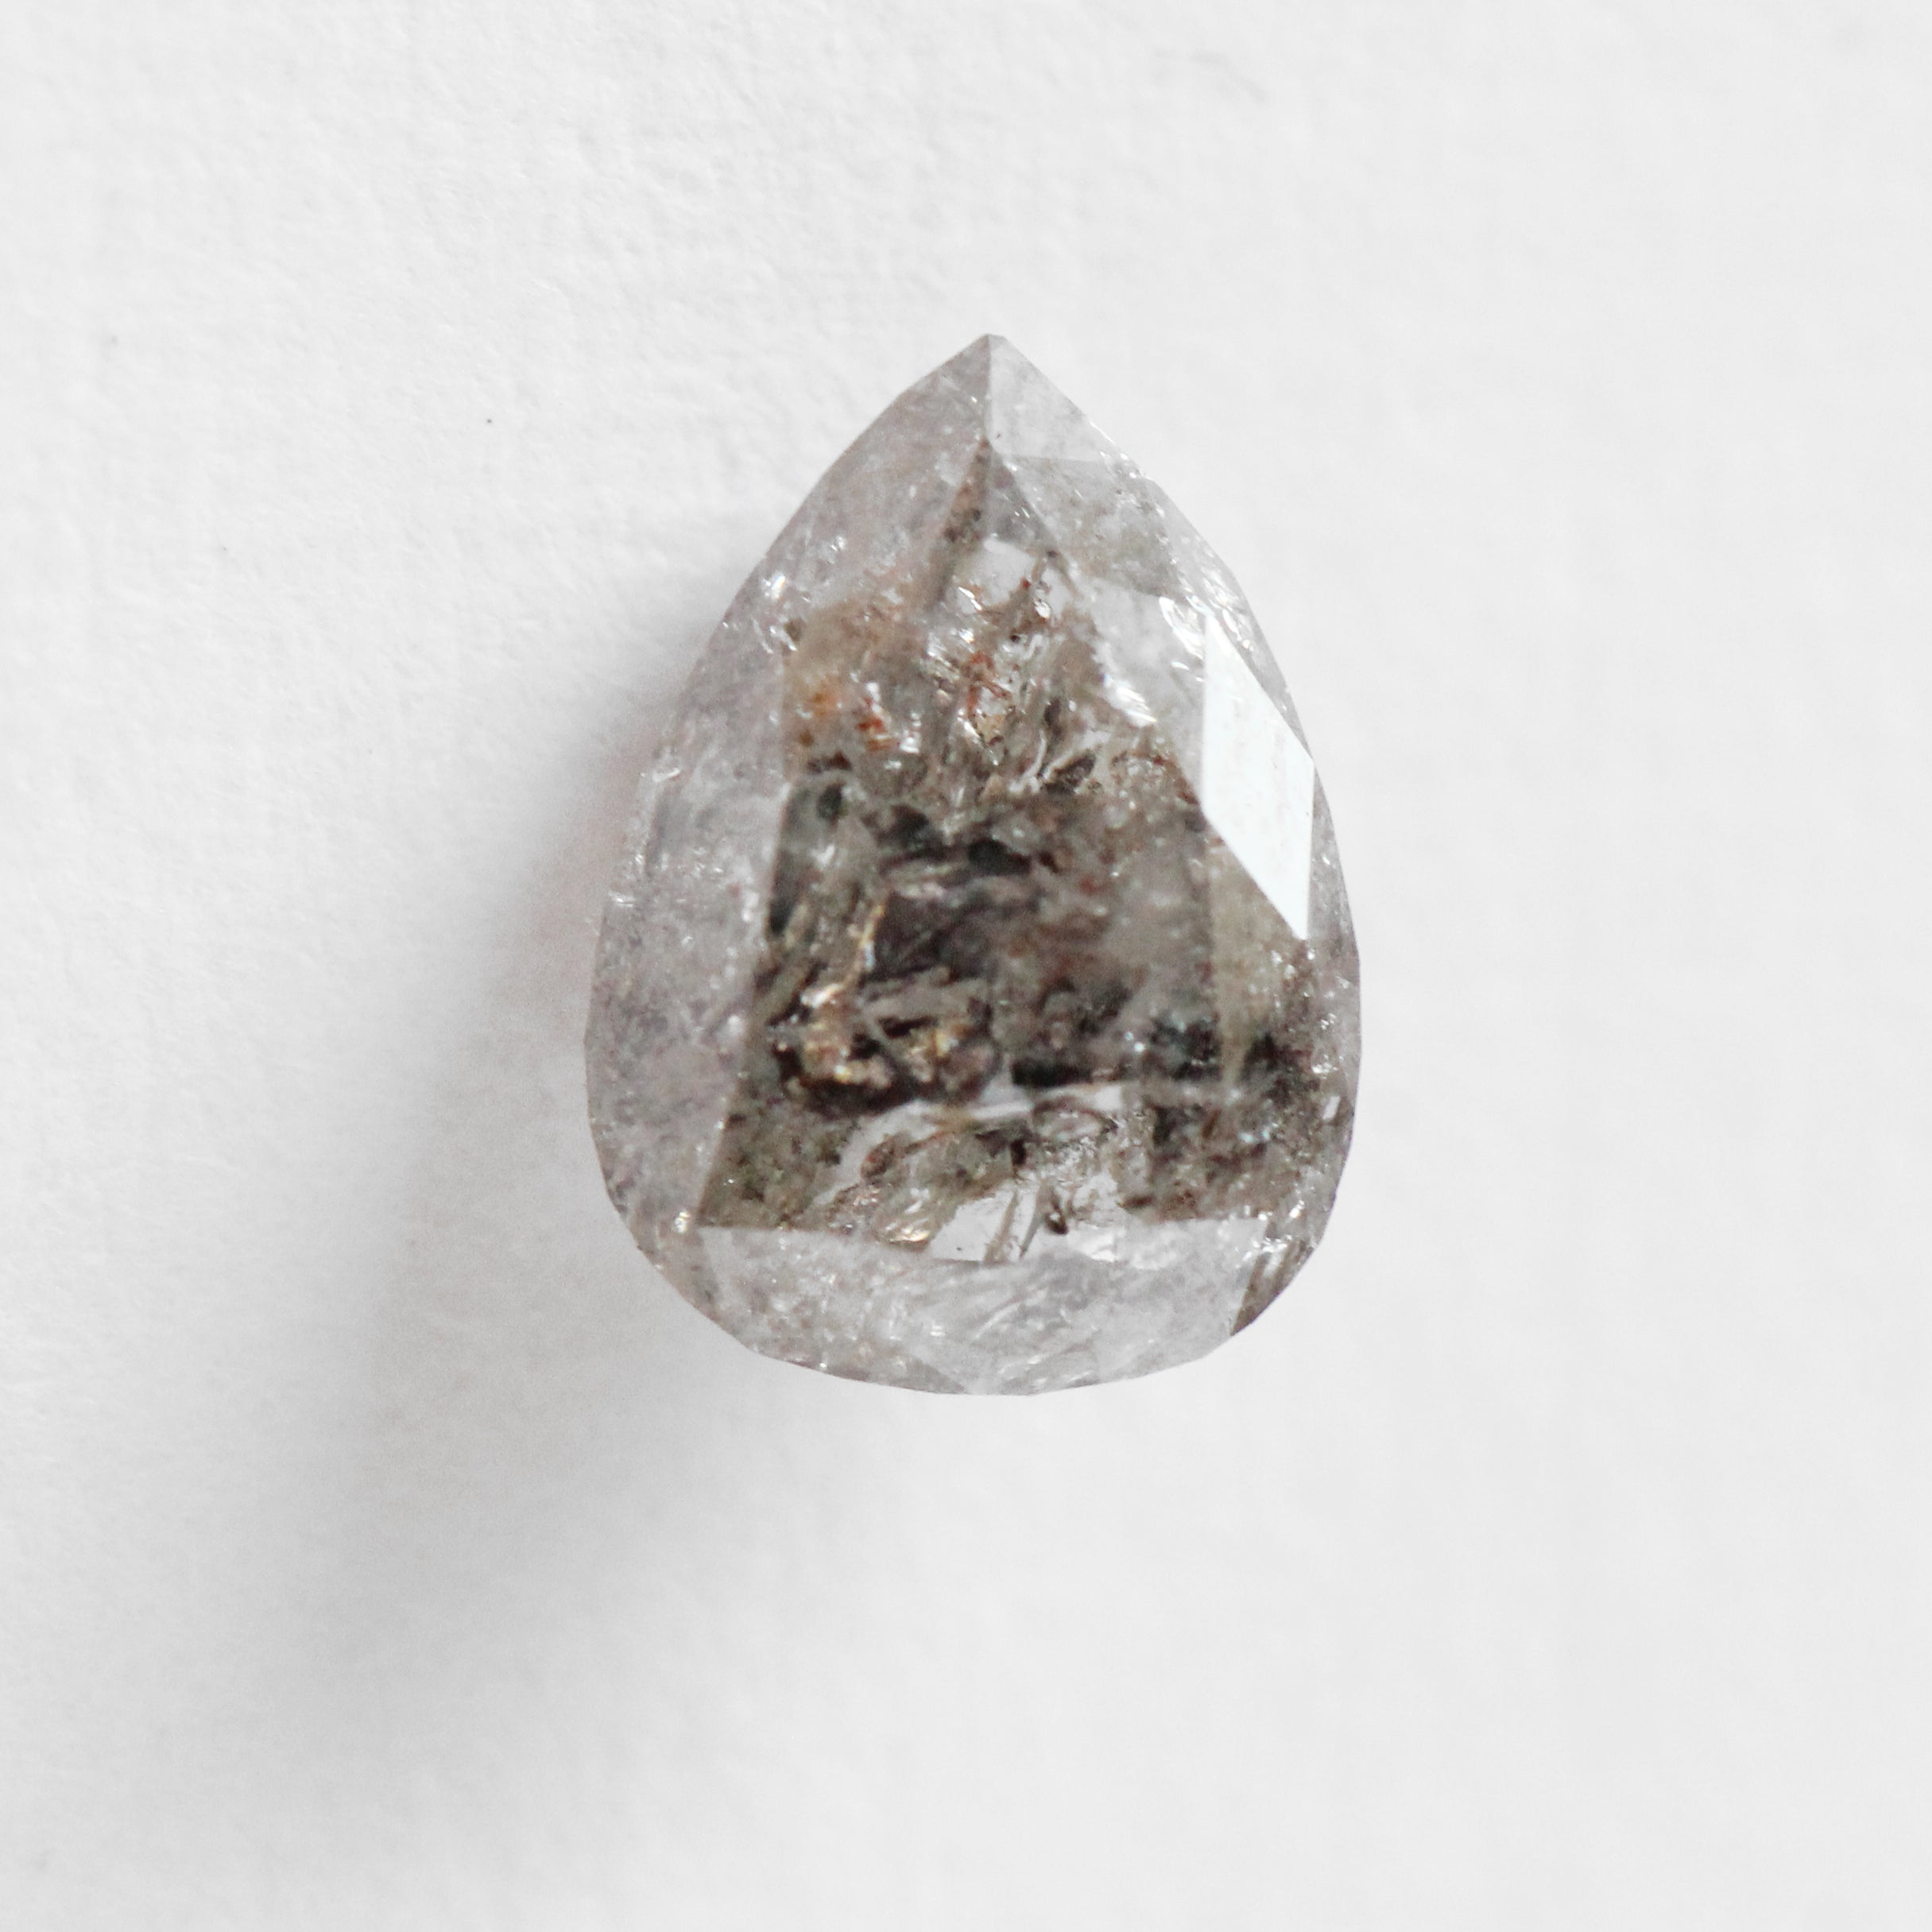 1.26 Carat Pear Celestial Diamond® for Custom Work - Inventory Code LGPU126 - Celestial Diamonds ® by Midwinter Co.